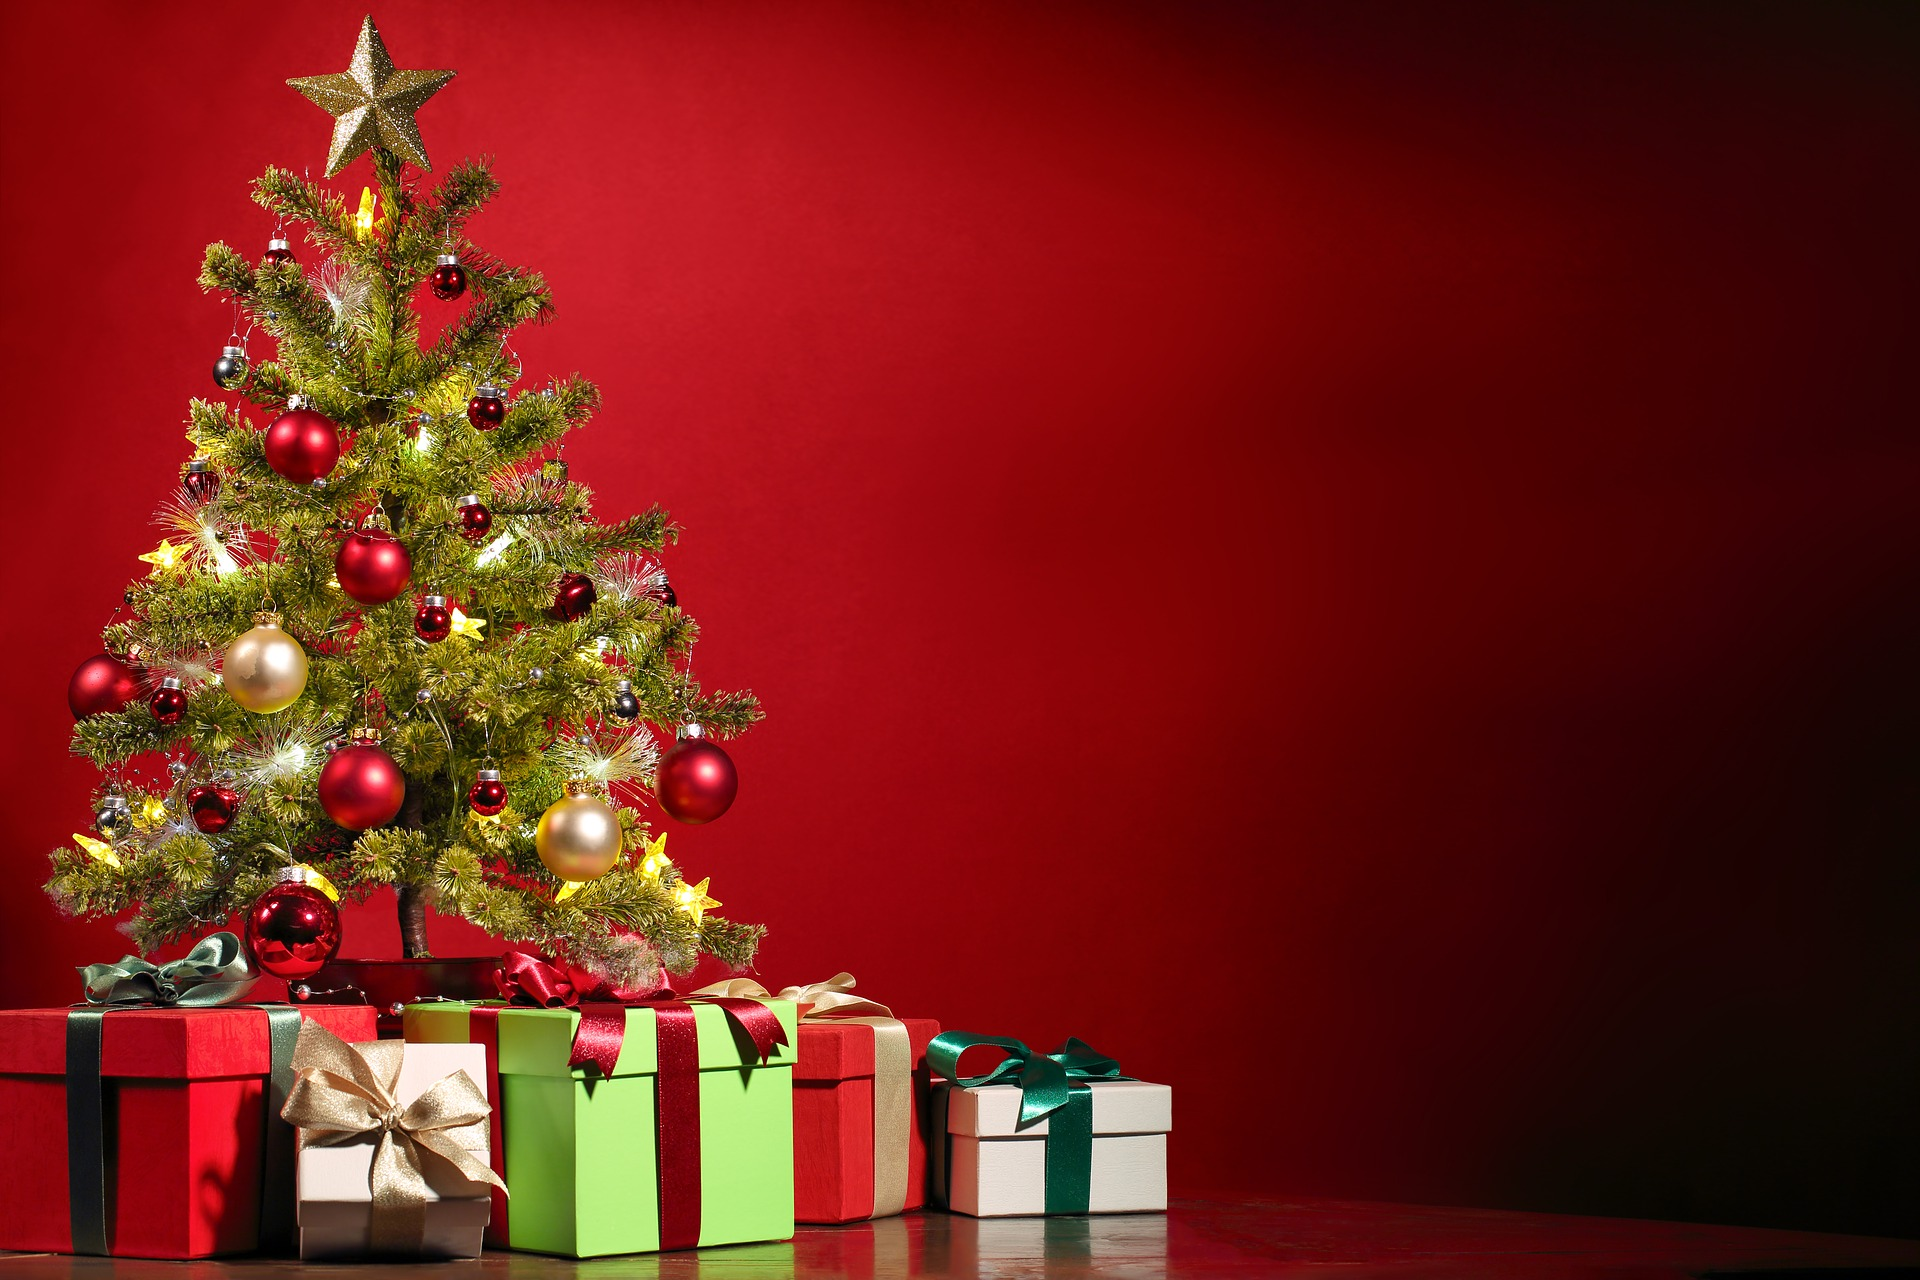 How to Spread Christmas Cheer on Your Business Social Media